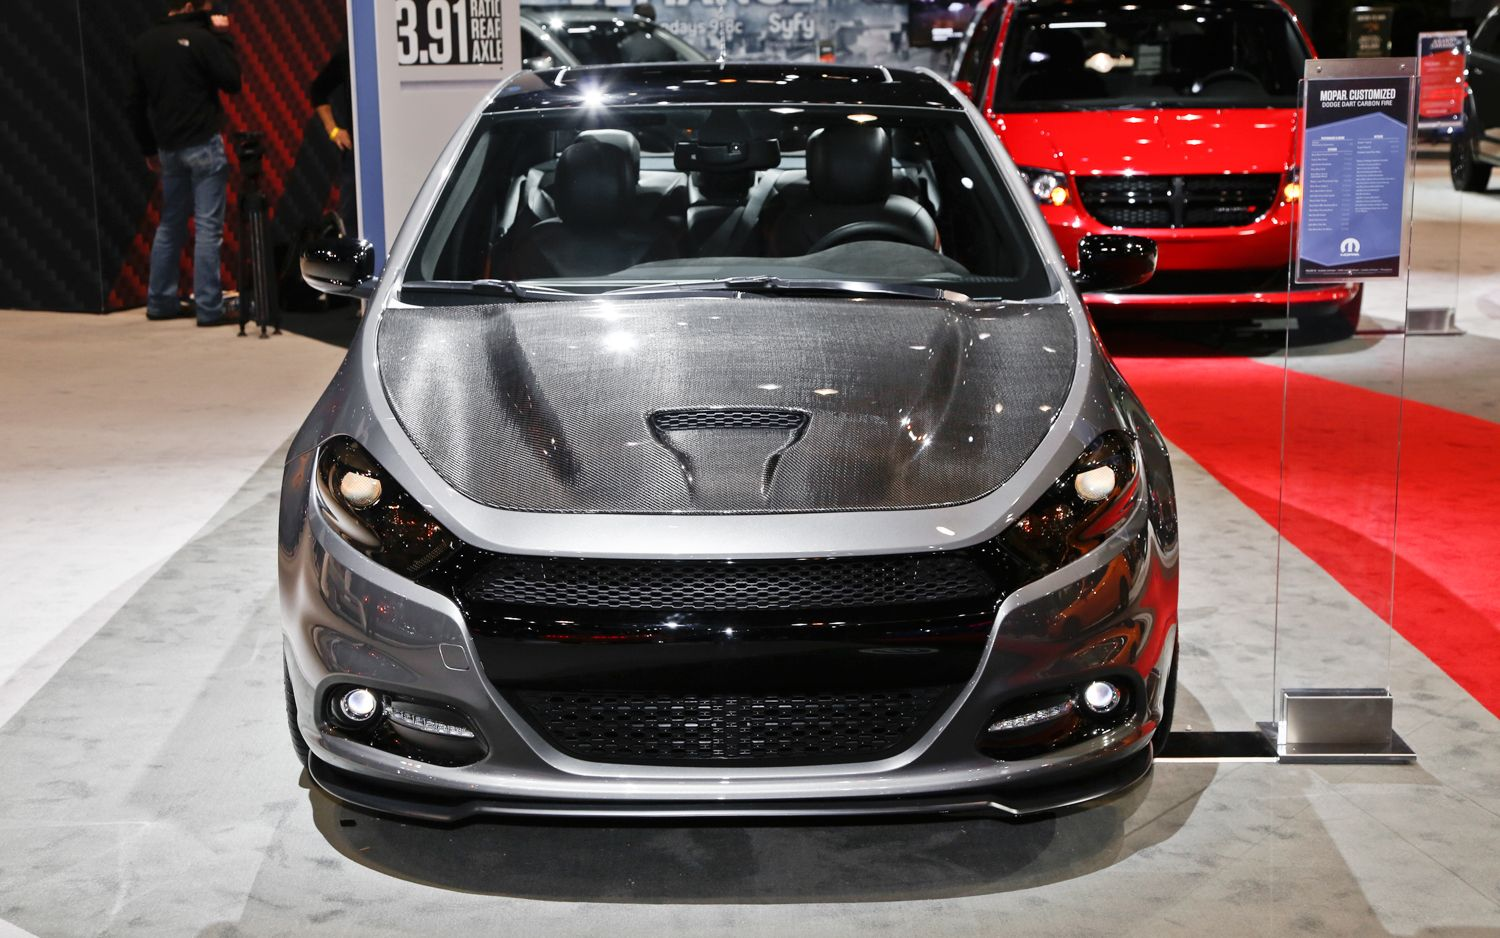 2017 dodge dart is the featured model the 2017 dodge dart facelift image is added in car pictures category by the author on oct